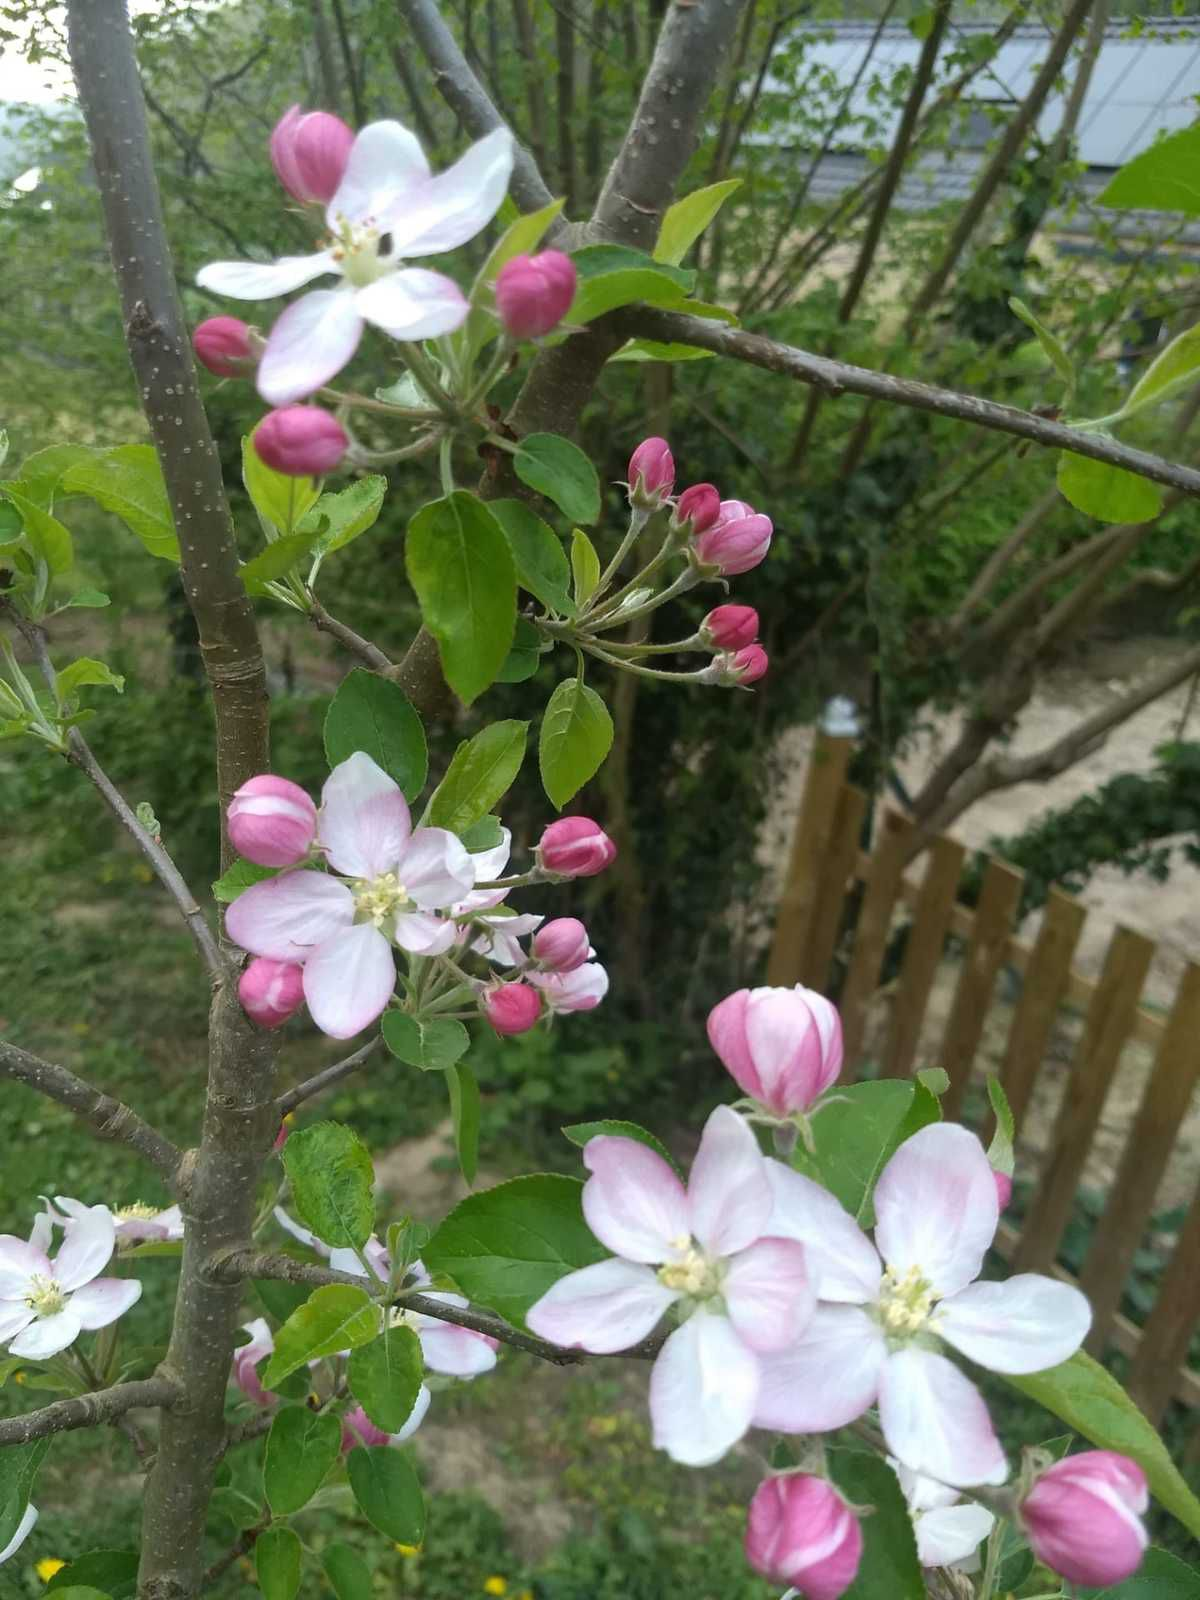 fleurs du pommier golden delicious - 19 avril 2020